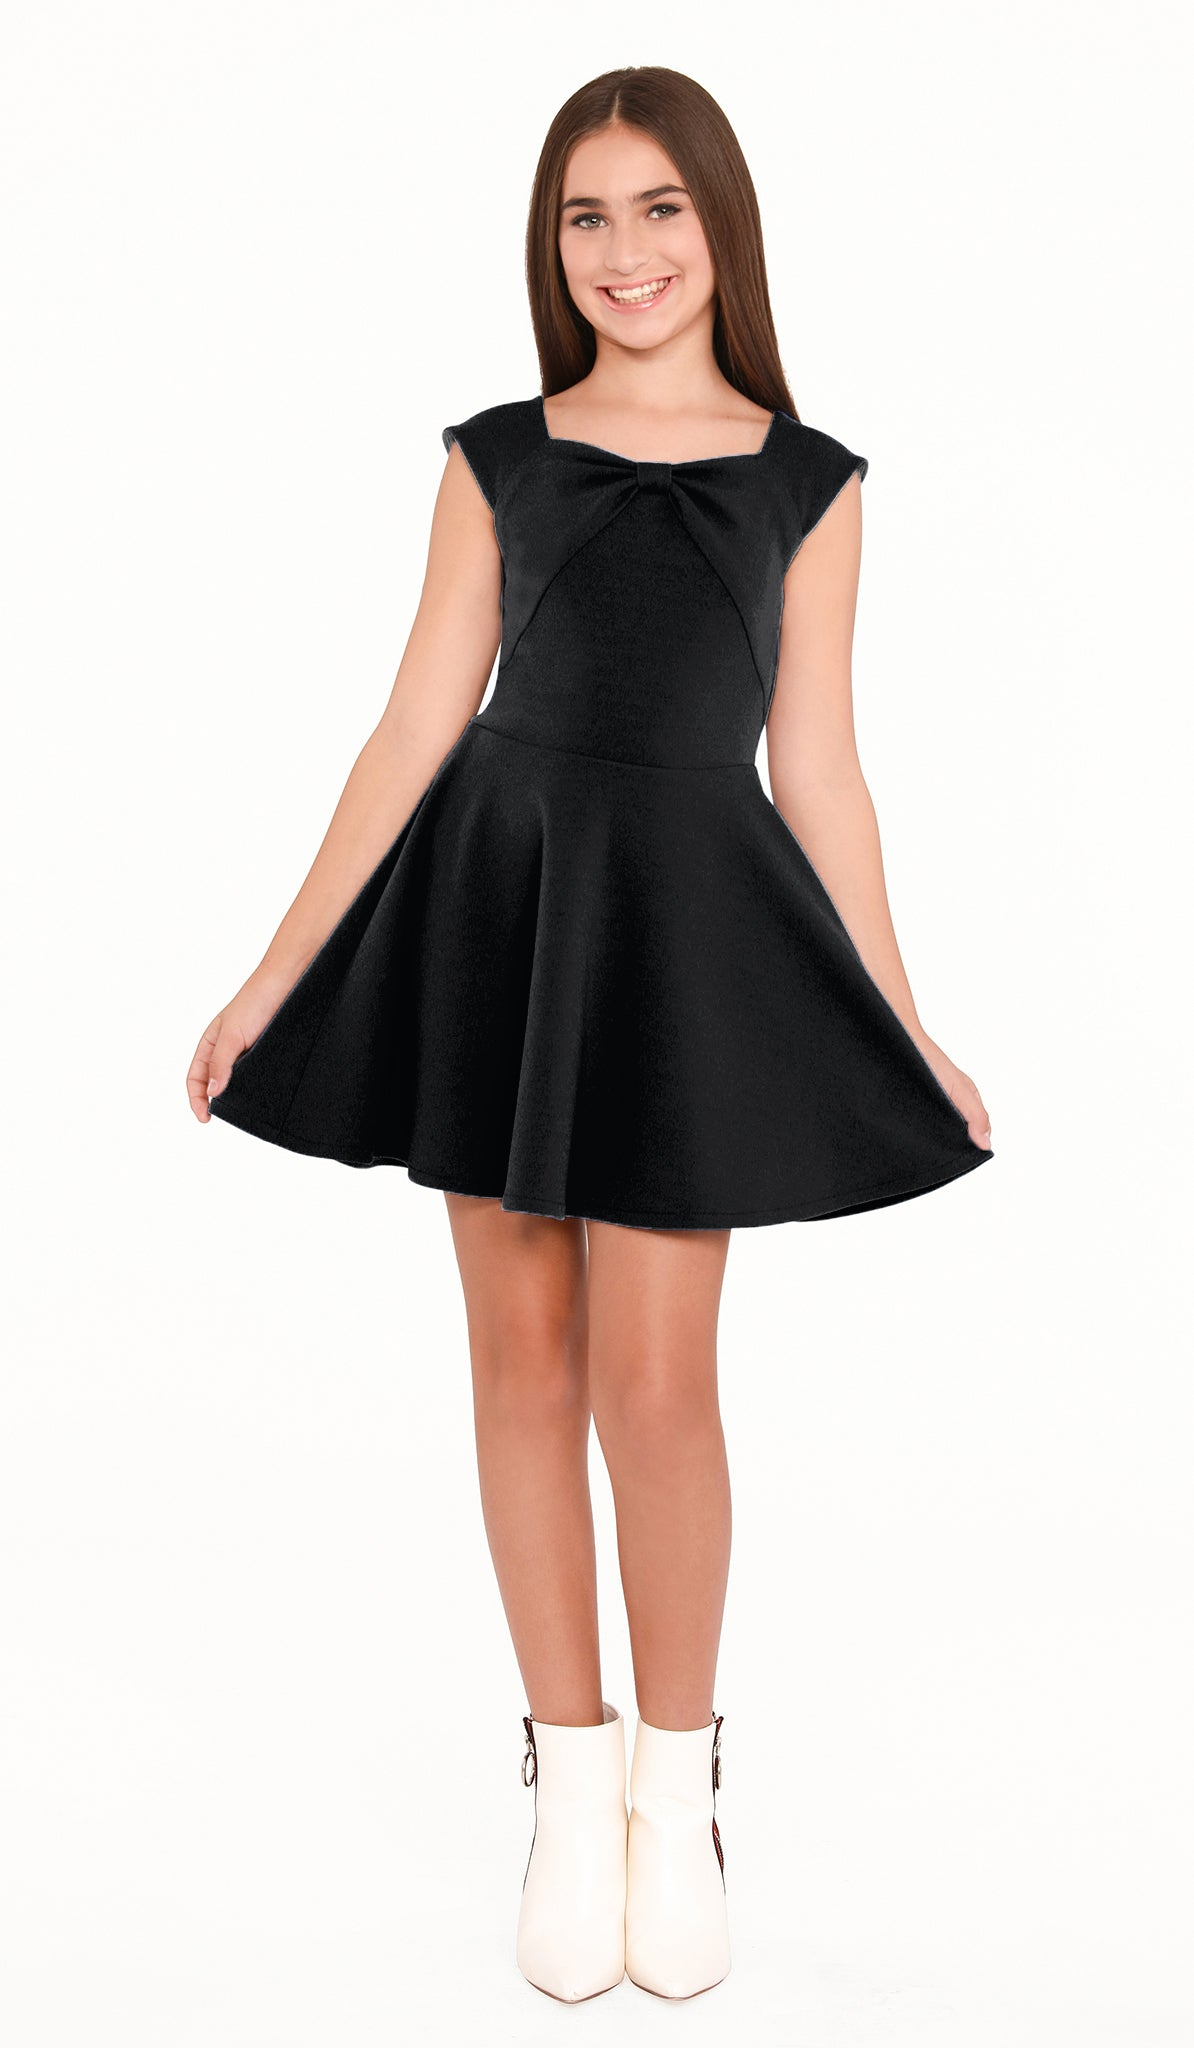 THE LIV DRESS - Sallymiller.com - [variant title] - | Event & Party Dresses for Tween Girls & Juniors | Weddings Dresses, Bat Mitzvah Dresses, Sweet Sixteen Dresses, Graduation Dresses, Birthday Party Dresses, Bar Mitzvah Dresses, Cotillion Dresses